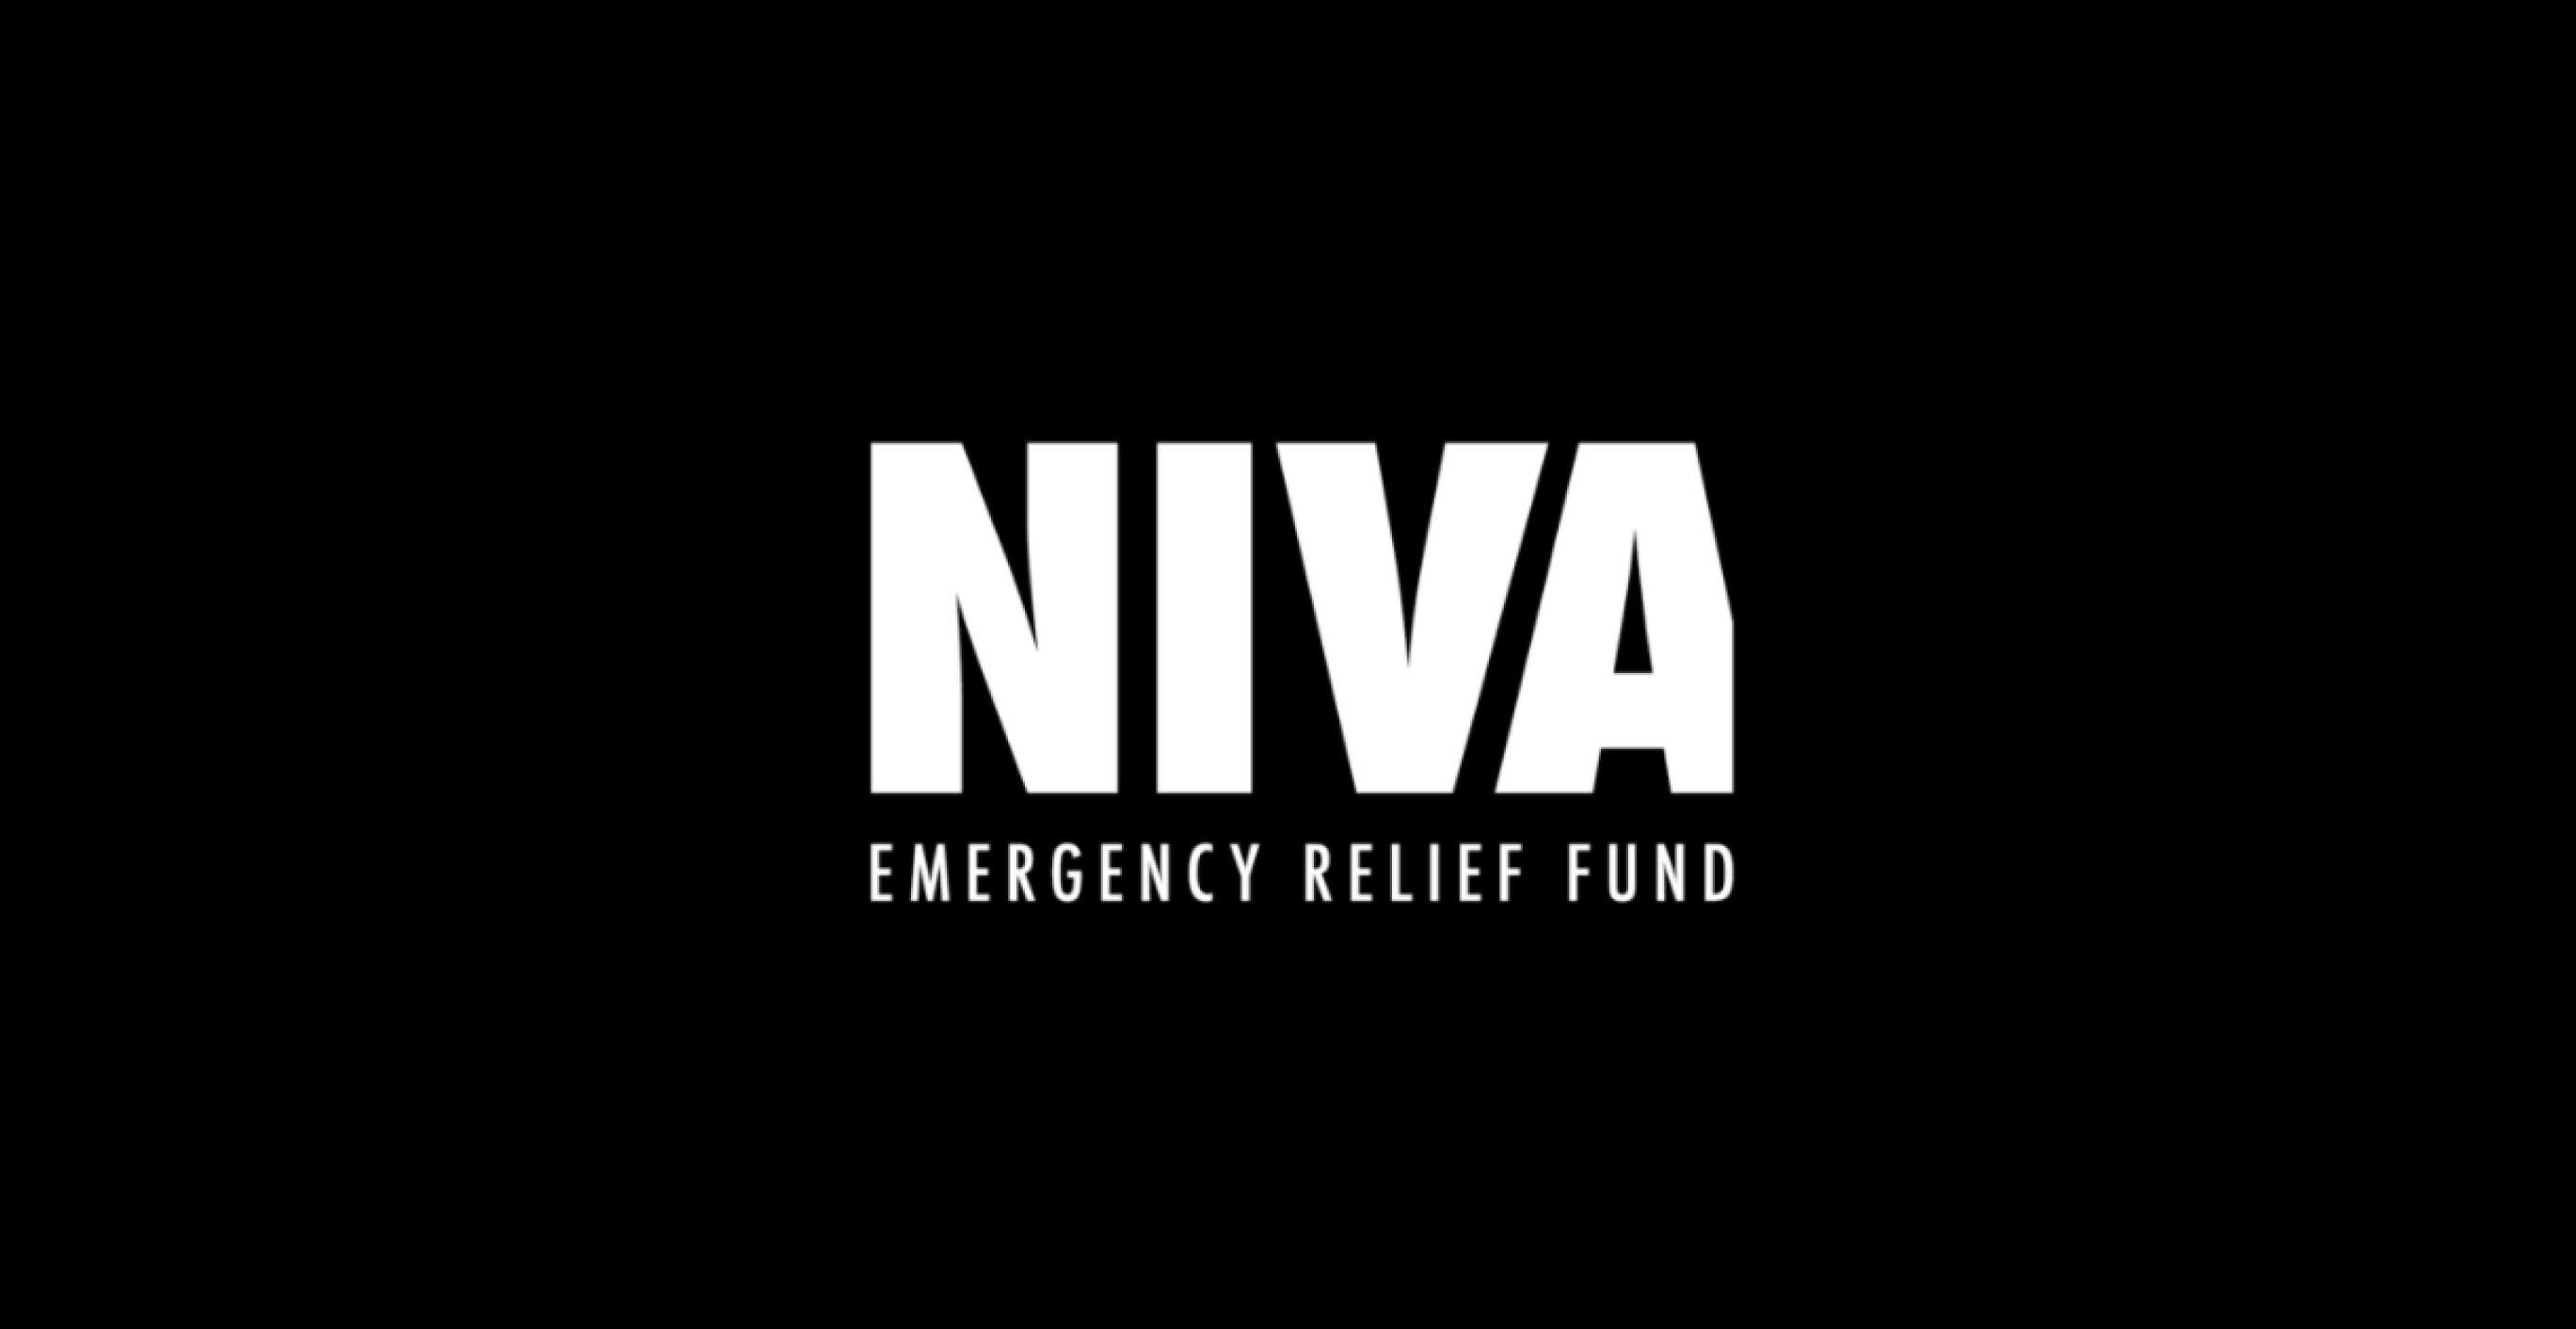 Donations to NIVA Emergency Relief Fund